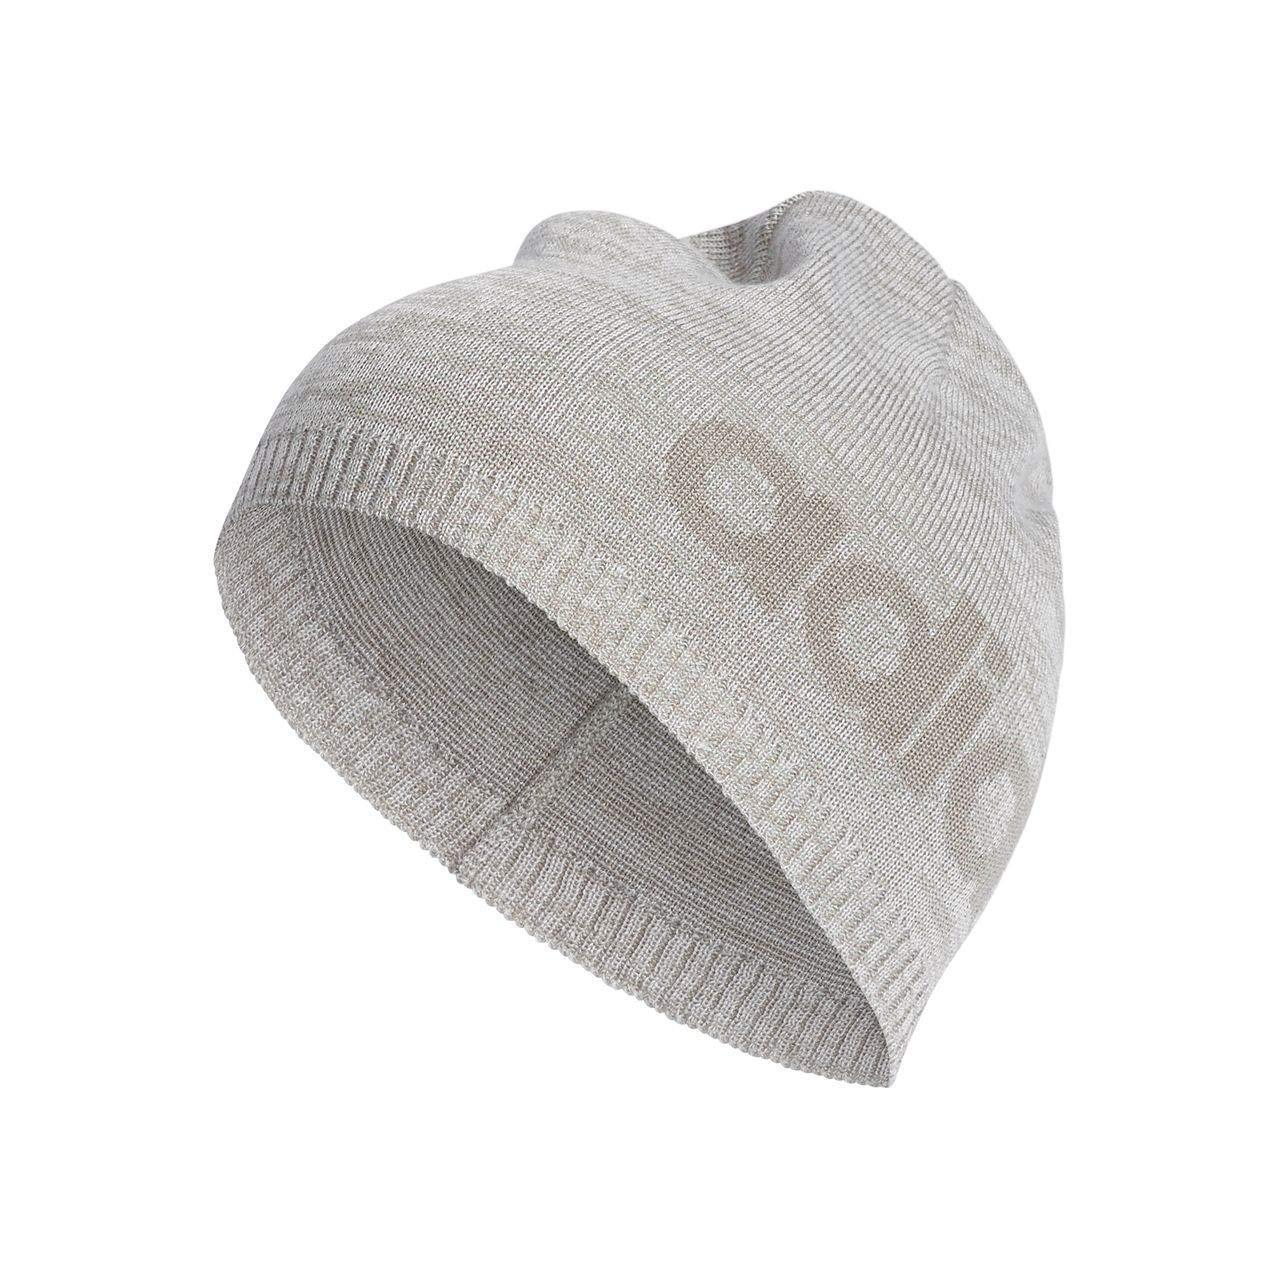 Adidas Mens Daily Knit Beanie